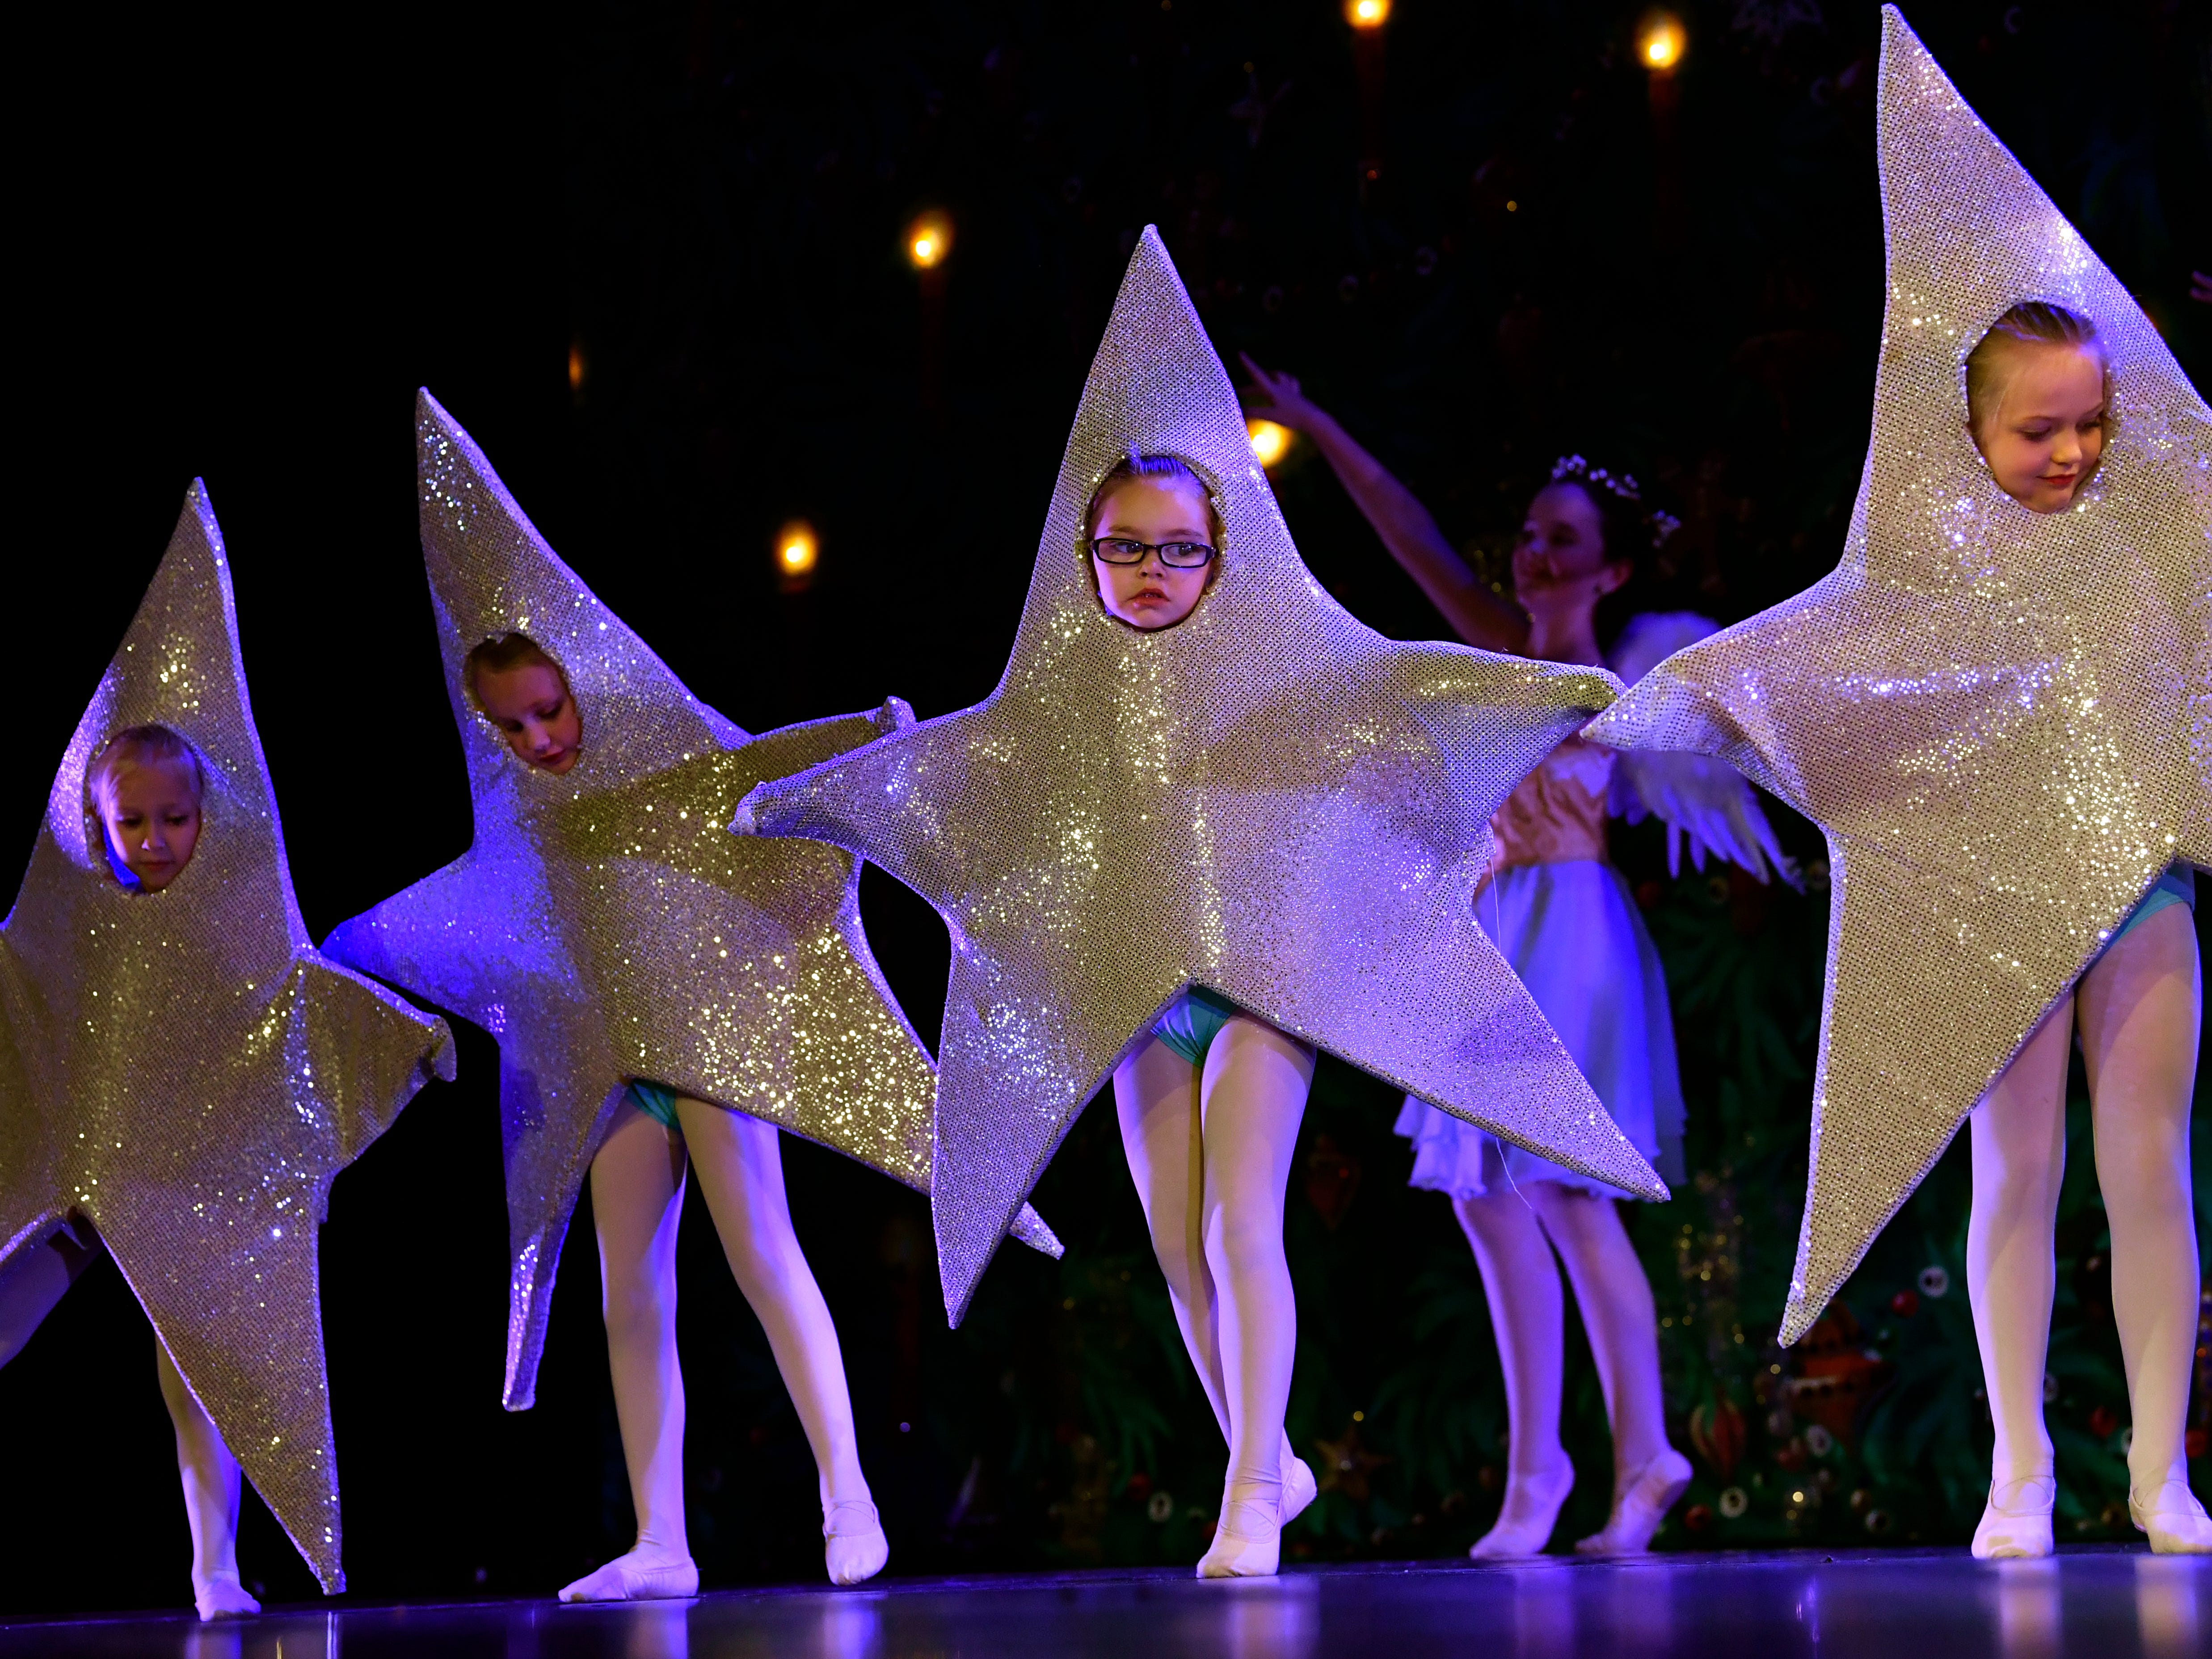 Twinkling Stars dance during rehearsal for The Nutcracker Nov. 13, 2018. This was the 31st year for the Abilene Ballet Theatre production, held at the Paramount Theatre.